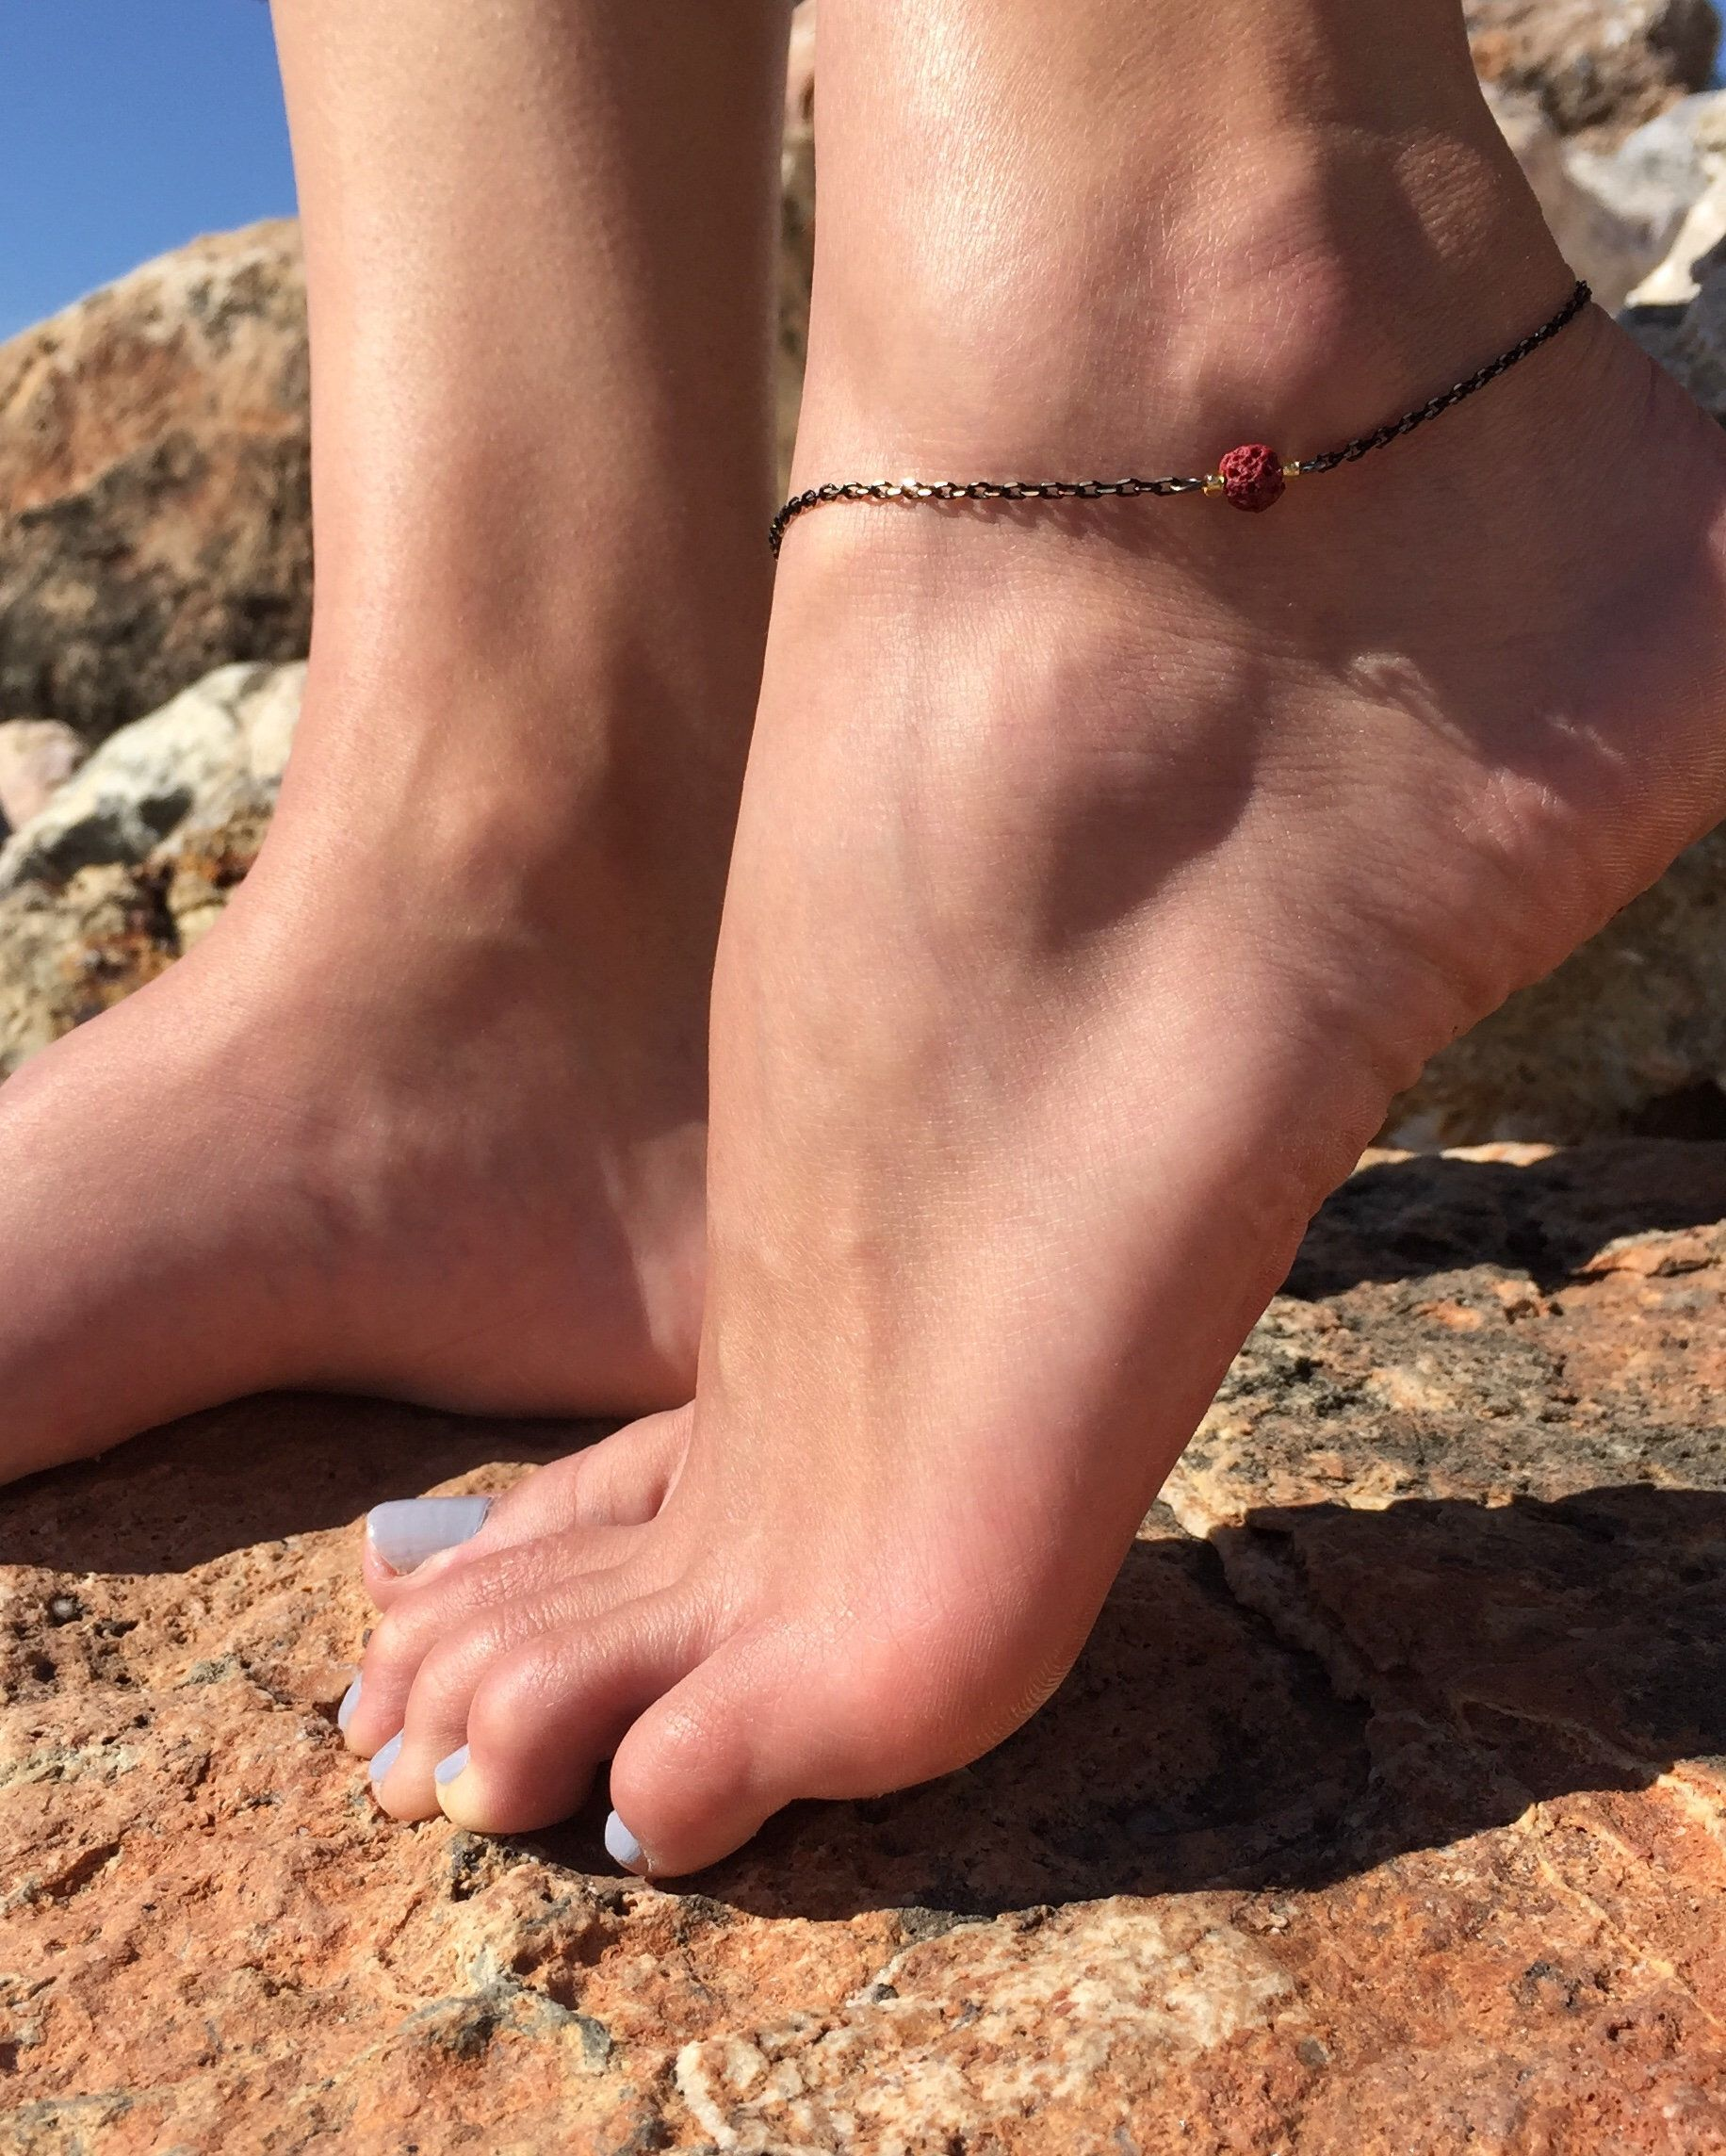 Feather Ankle Bracelet Up To Size 11 Inches